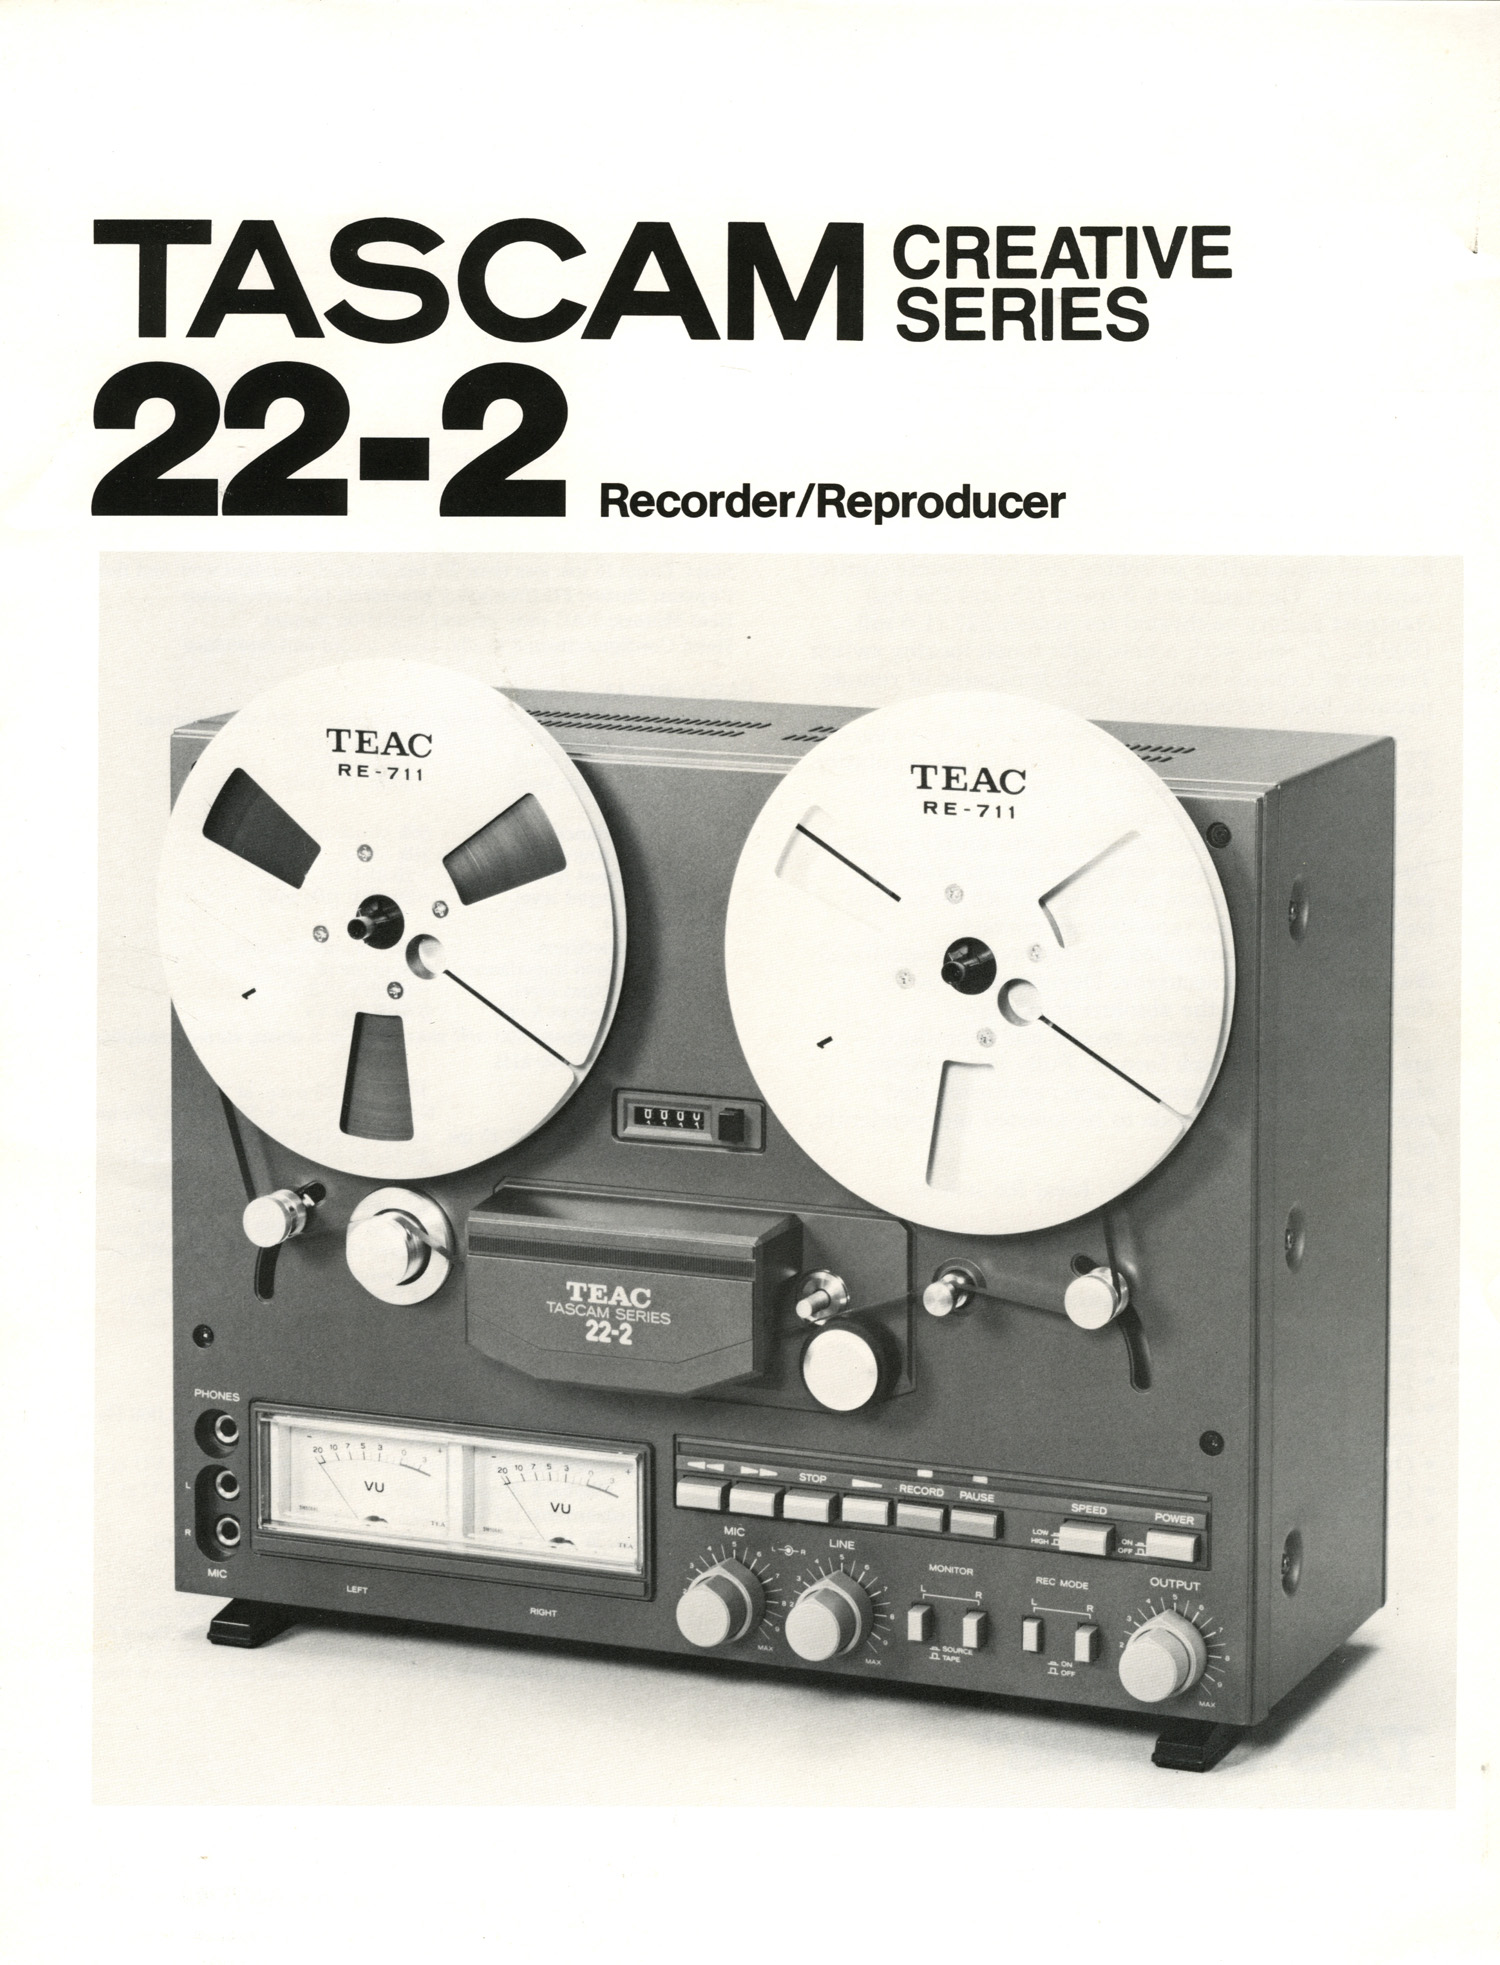 1991 ad for the Teac Tascam 22-2  2 track professional reel to reel tape recorder in the Reel2ReelTexas.com vintage recording collection Museum